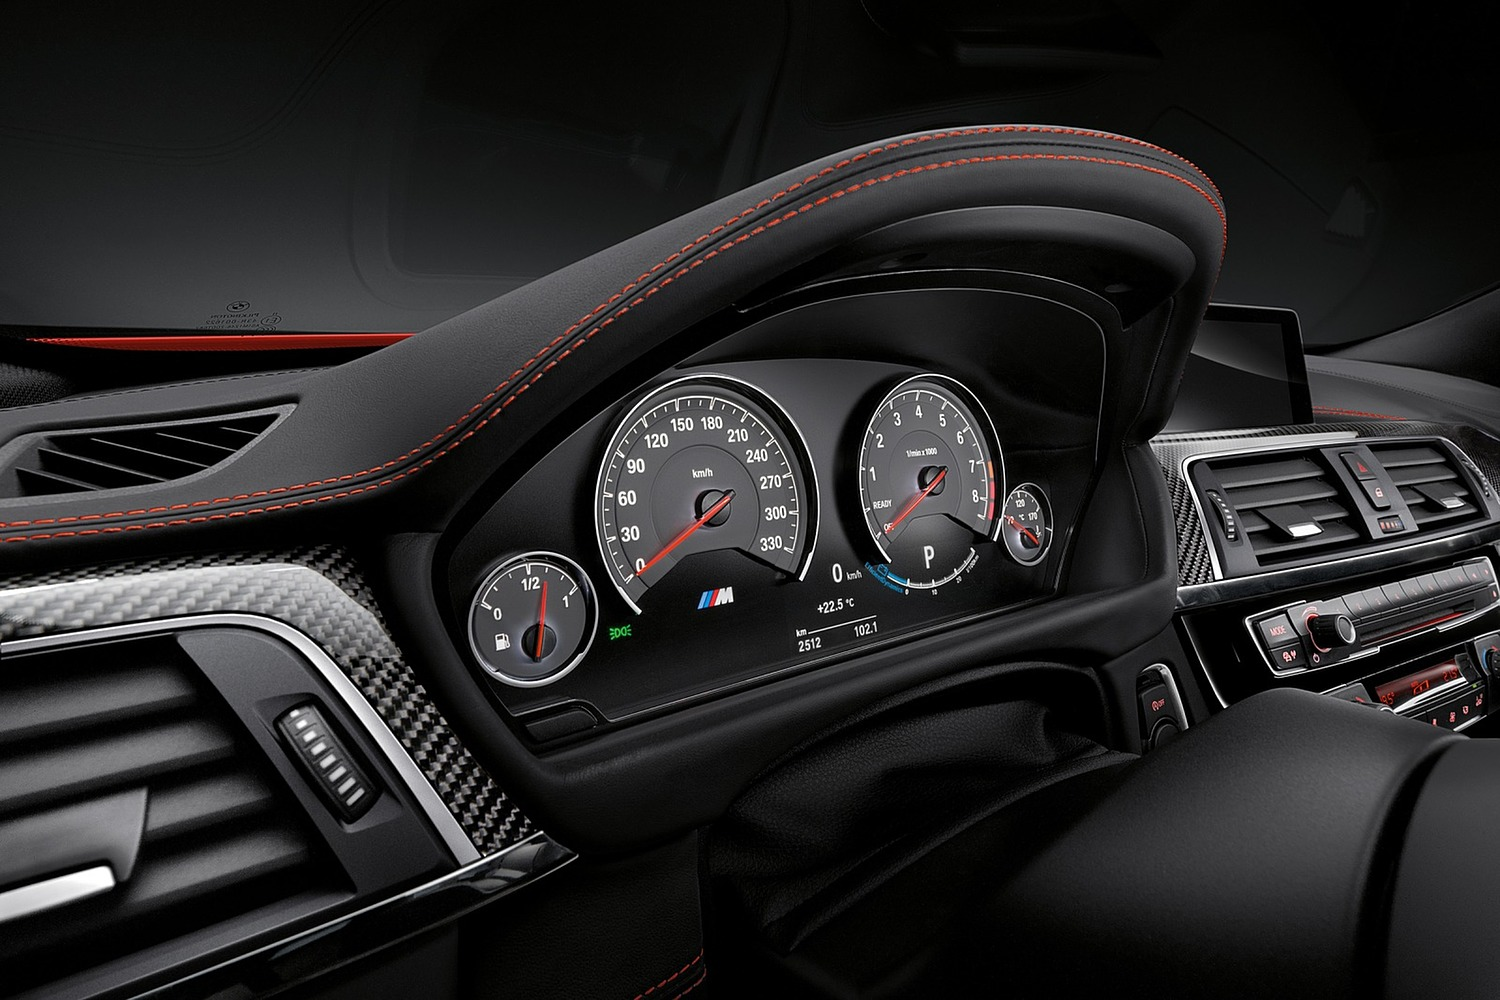 2018 BMW M4 Coupe Gauge Cluster